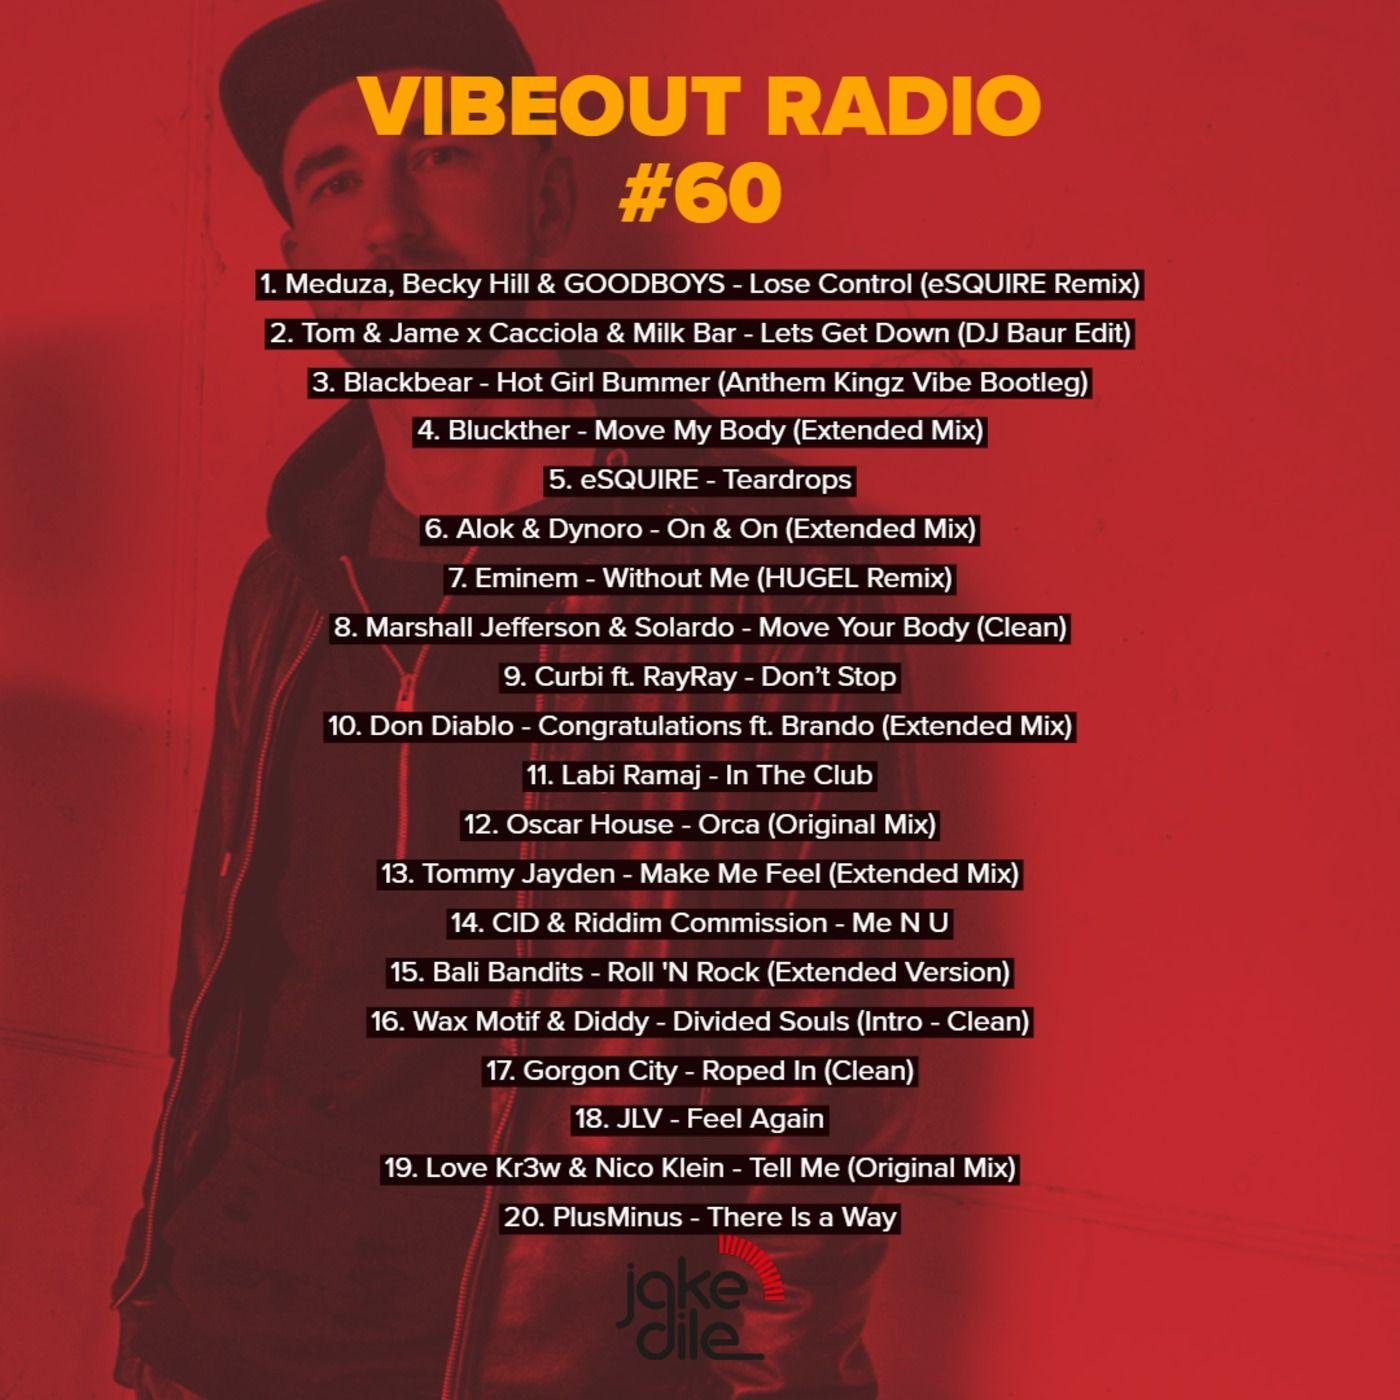 Vibeout Radio Podcast Jake Dile Listen Notes